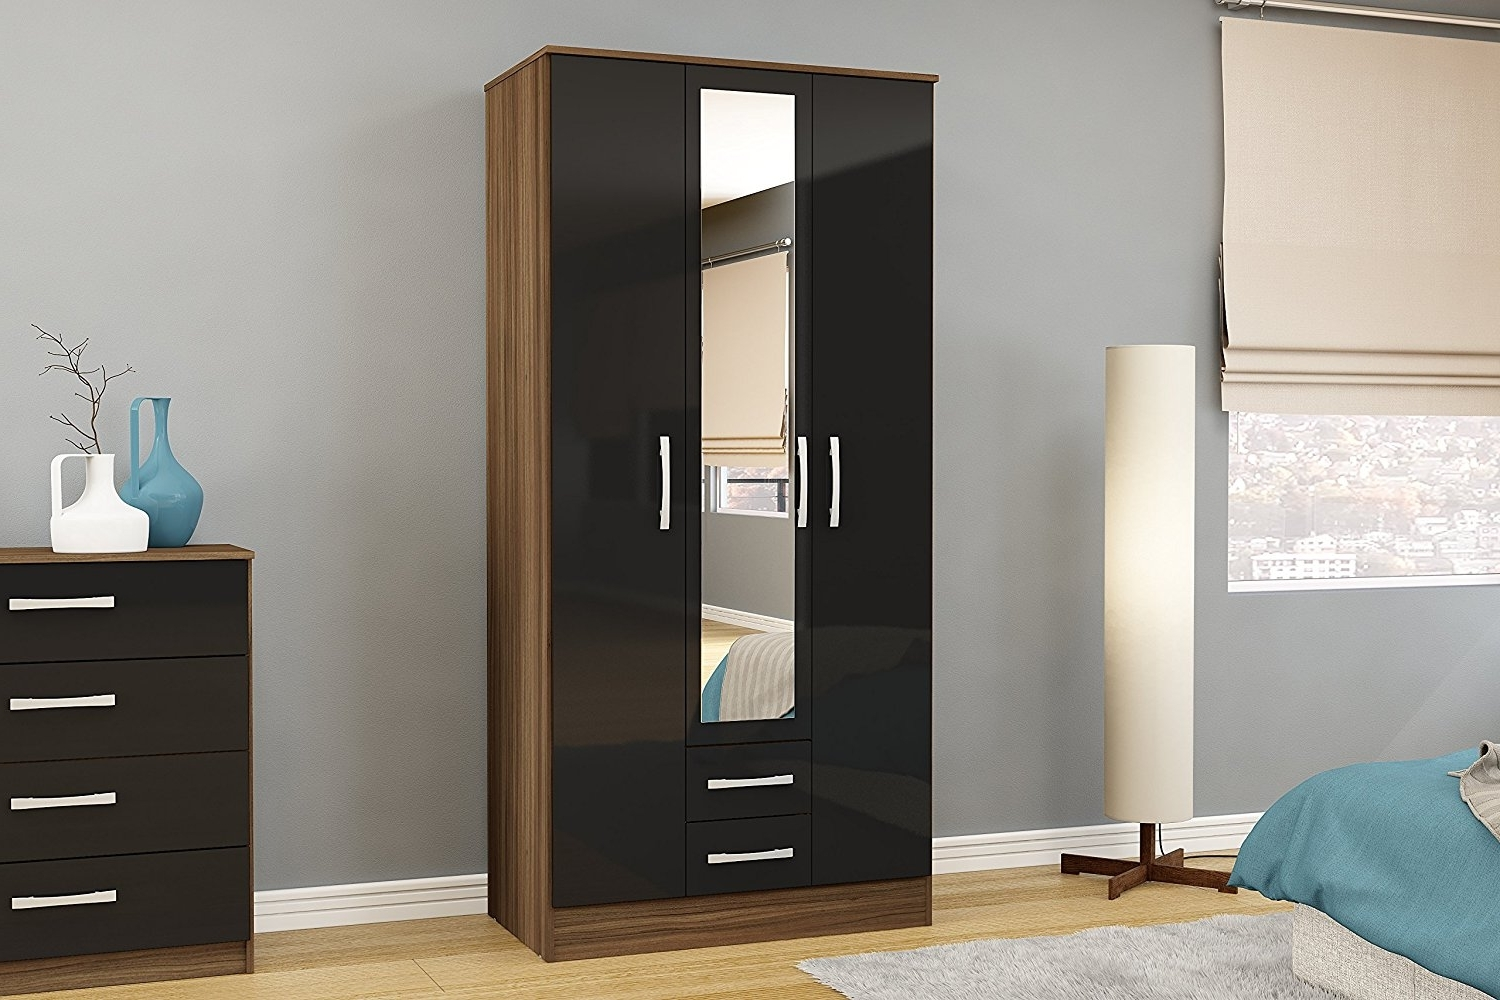 Birlea Lynx 3 Door 2 Drawer Wardrobe With Mirror – High Gloss With Regard To Well Known Black 3 Door Wardrobes (View 2 of 15)